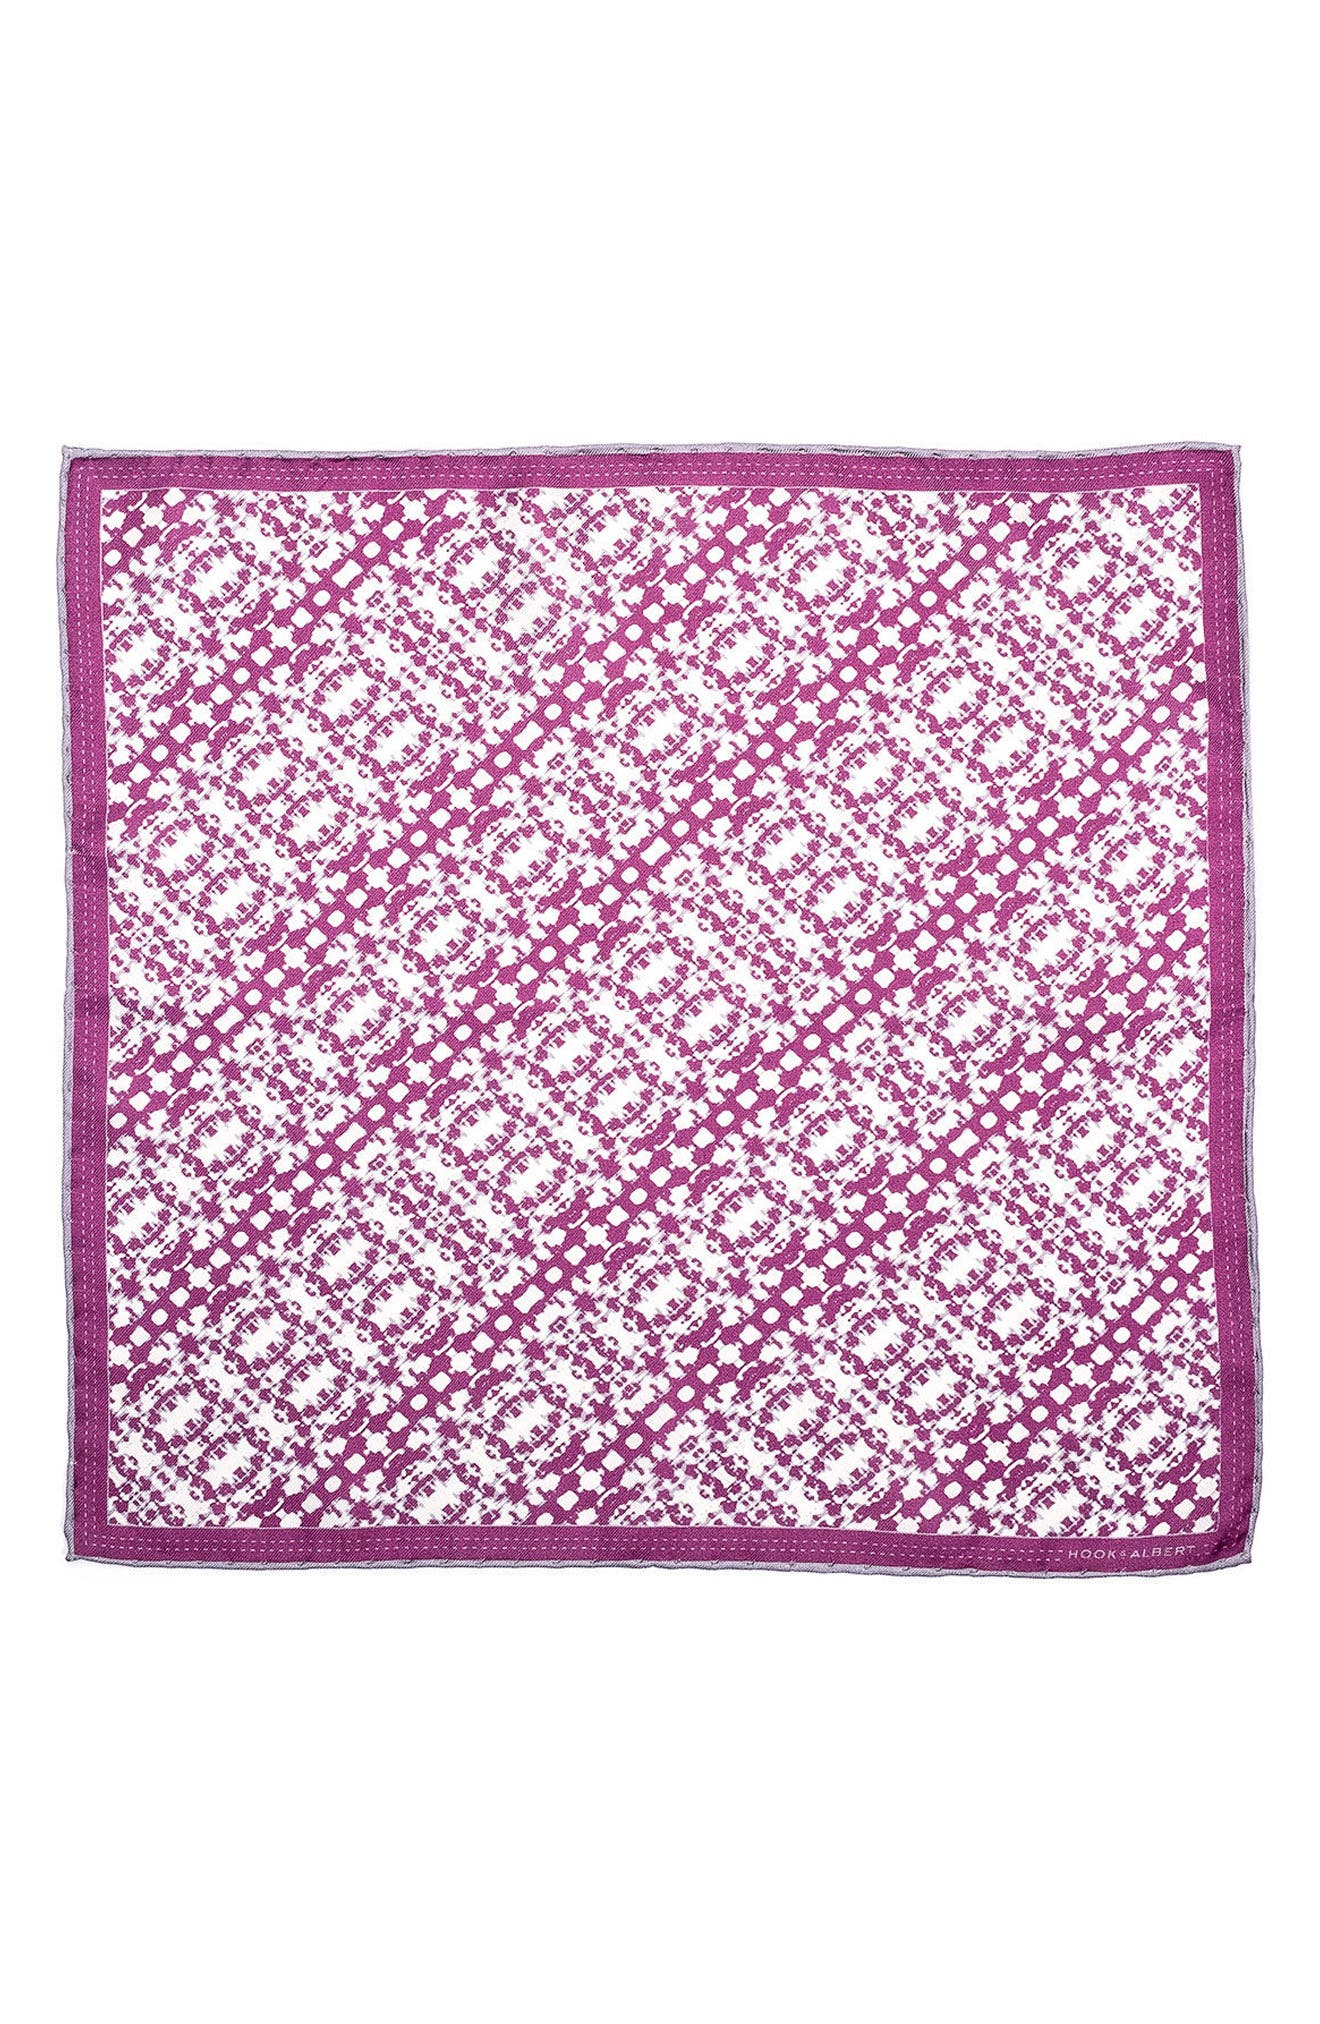 Batik Patterned Silk Pocket Square,                             Alternate thumbnail 8, color,